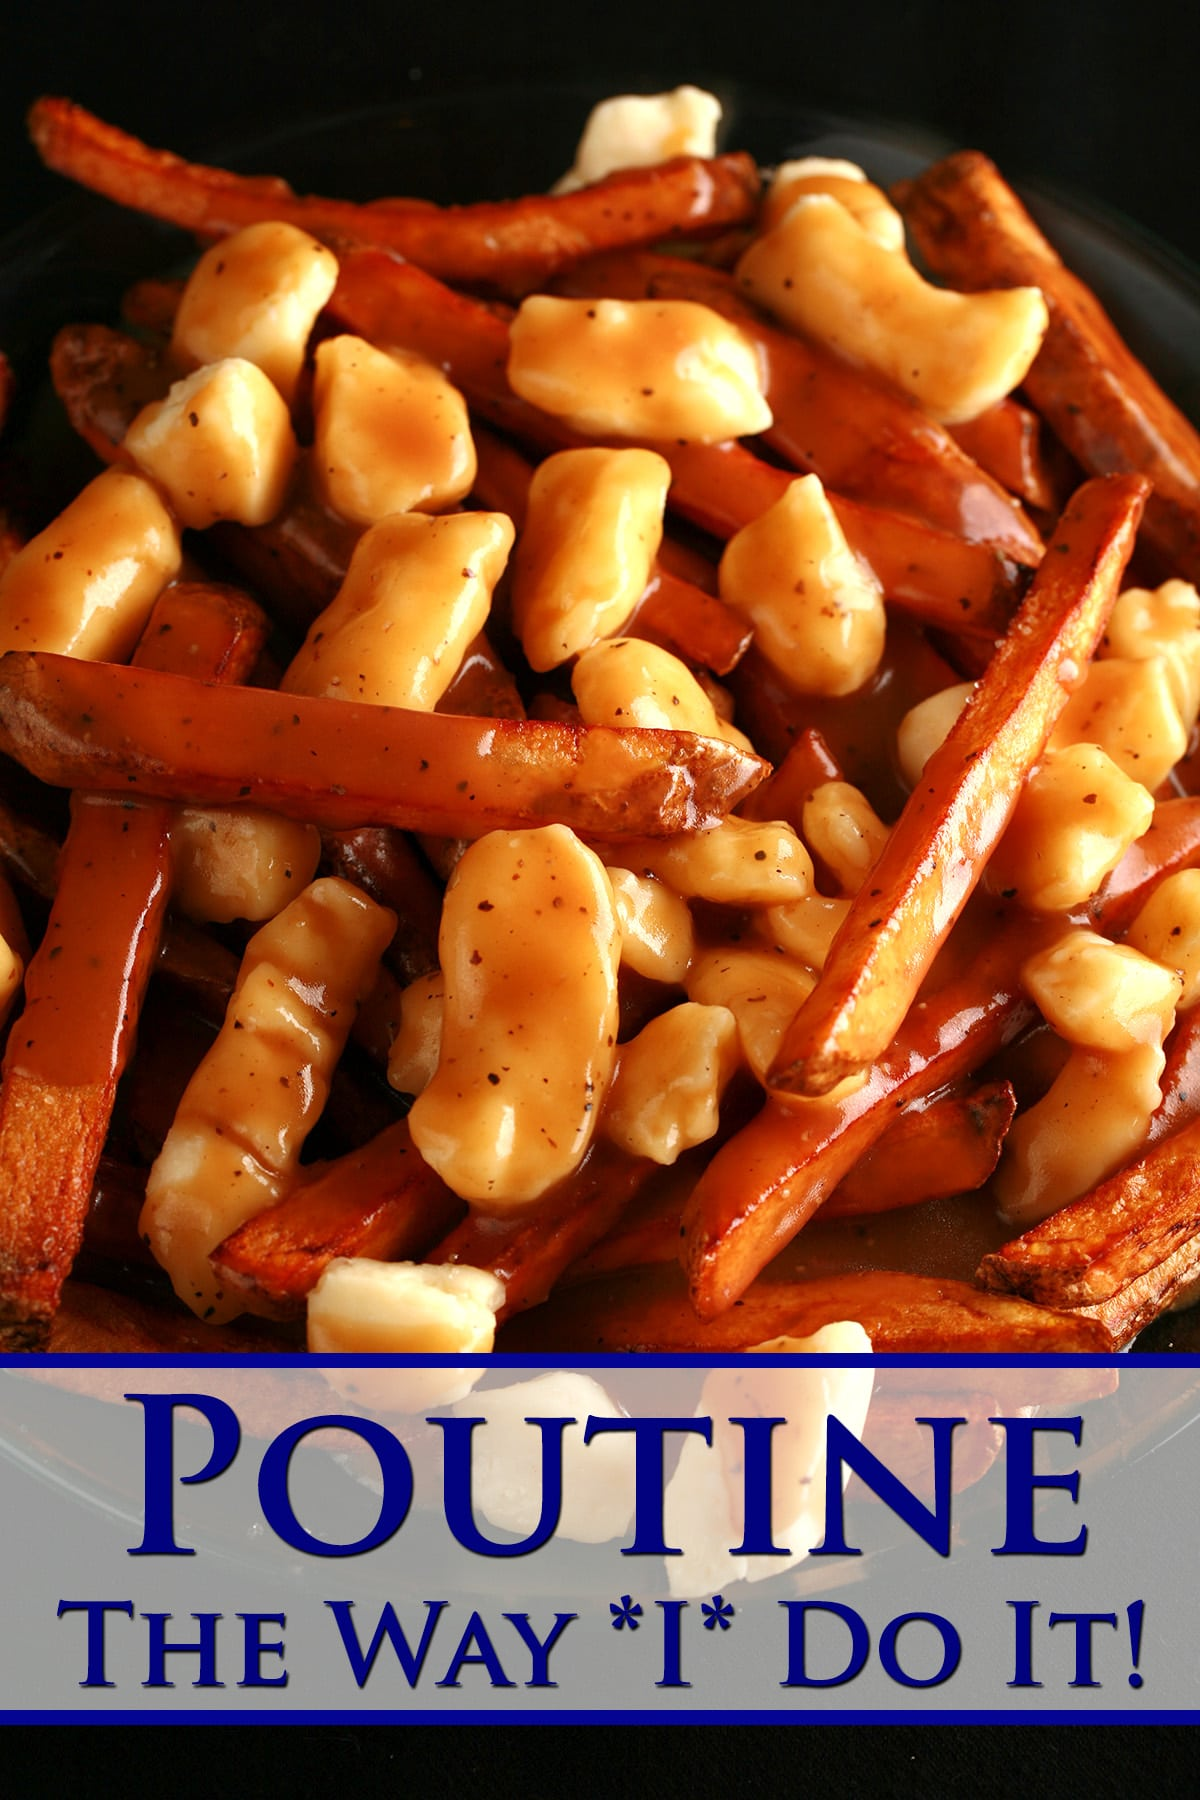 A plate of poutine - fries, white cheese curds, and gravy.